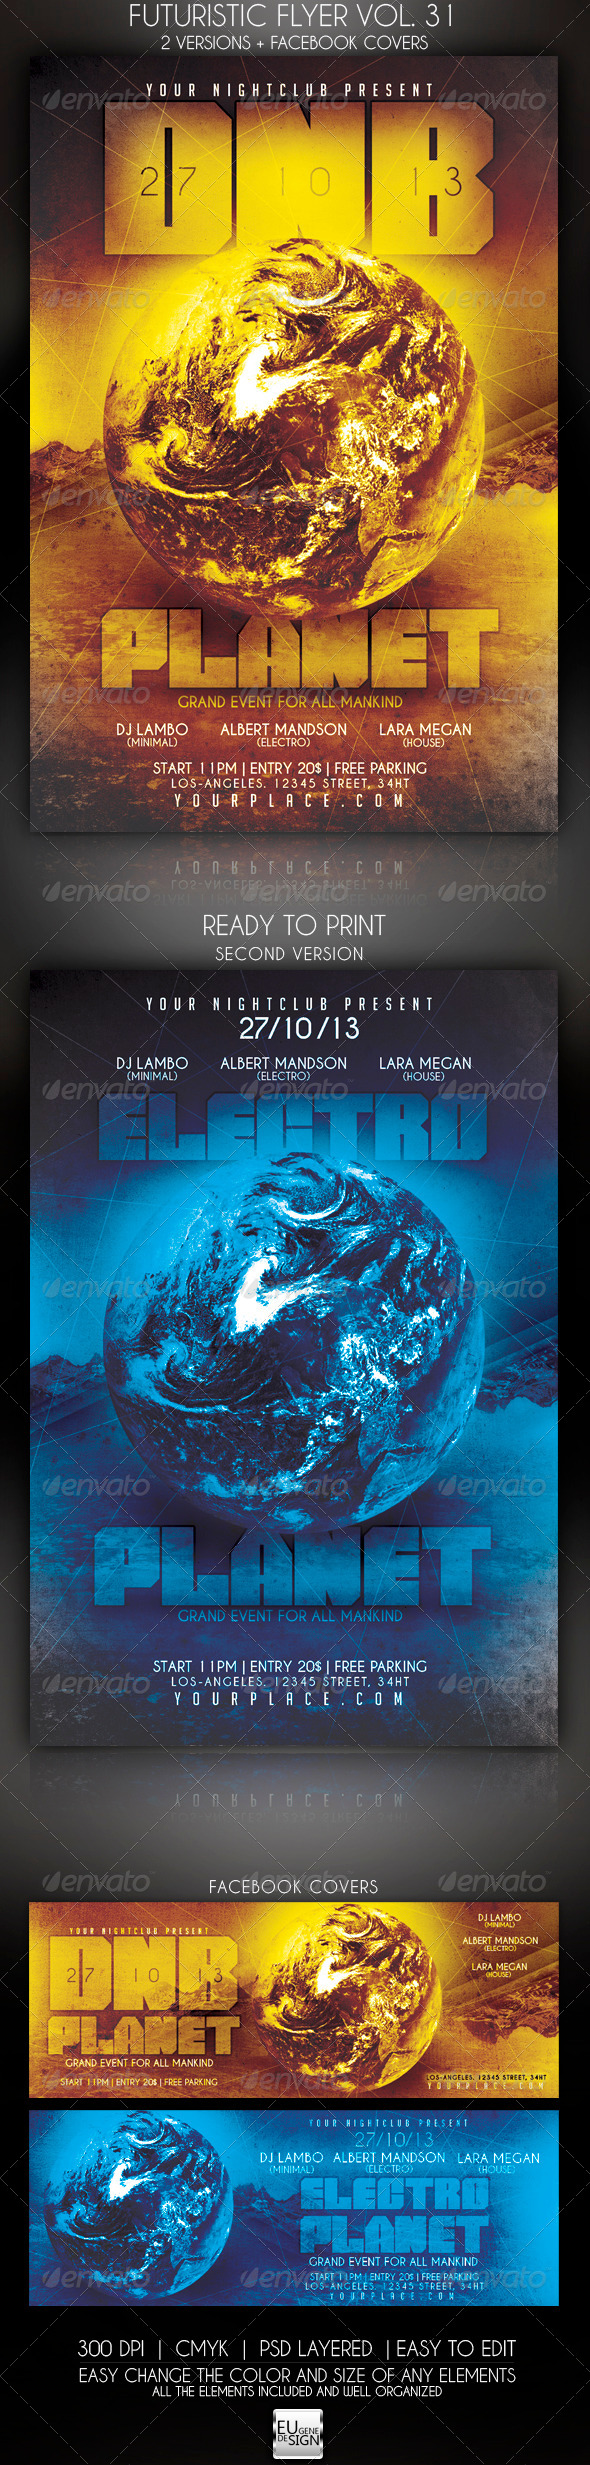 Futuristic Flyer Vol. 31 - Clubs & Parties Events